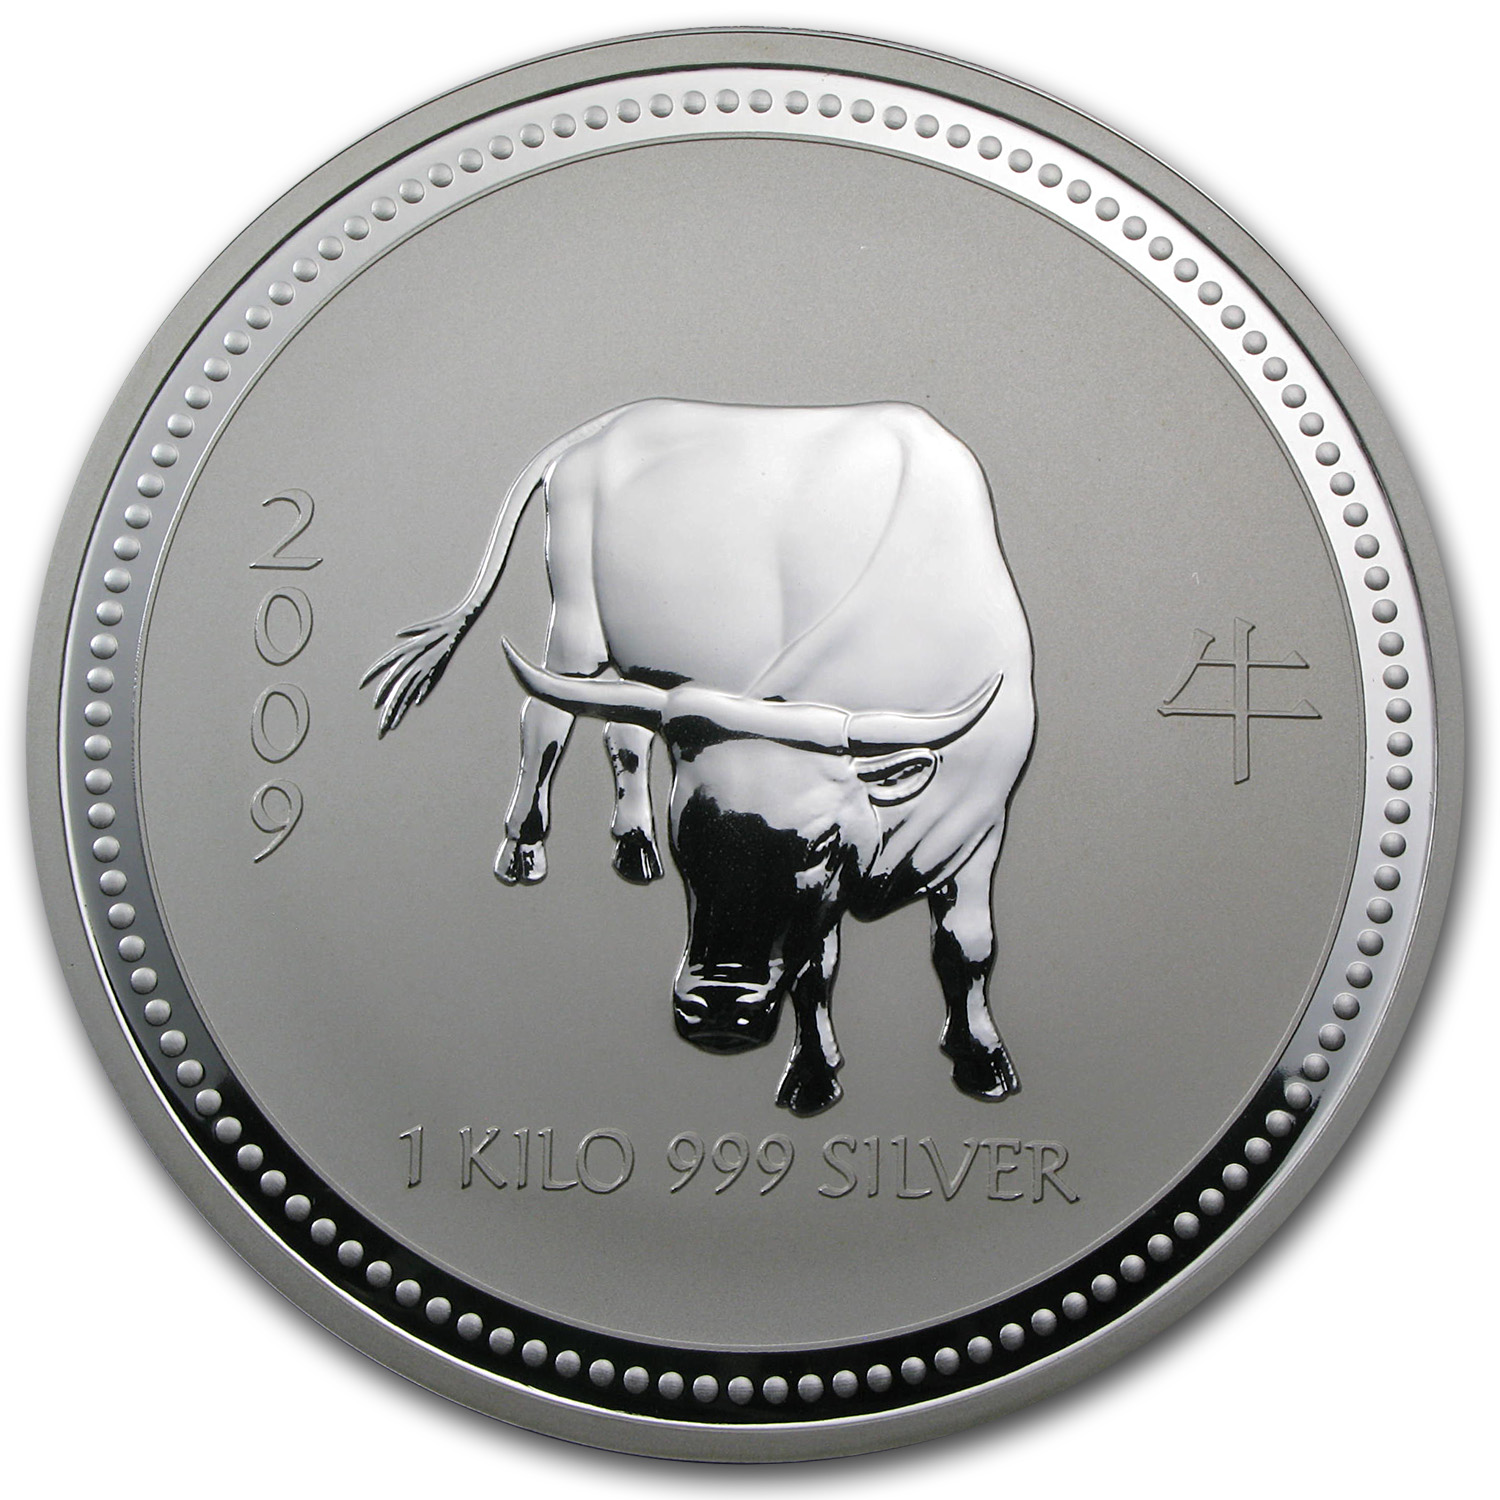 2009 Australia 1 kilo Silver Year of the Ox BU (Series I)